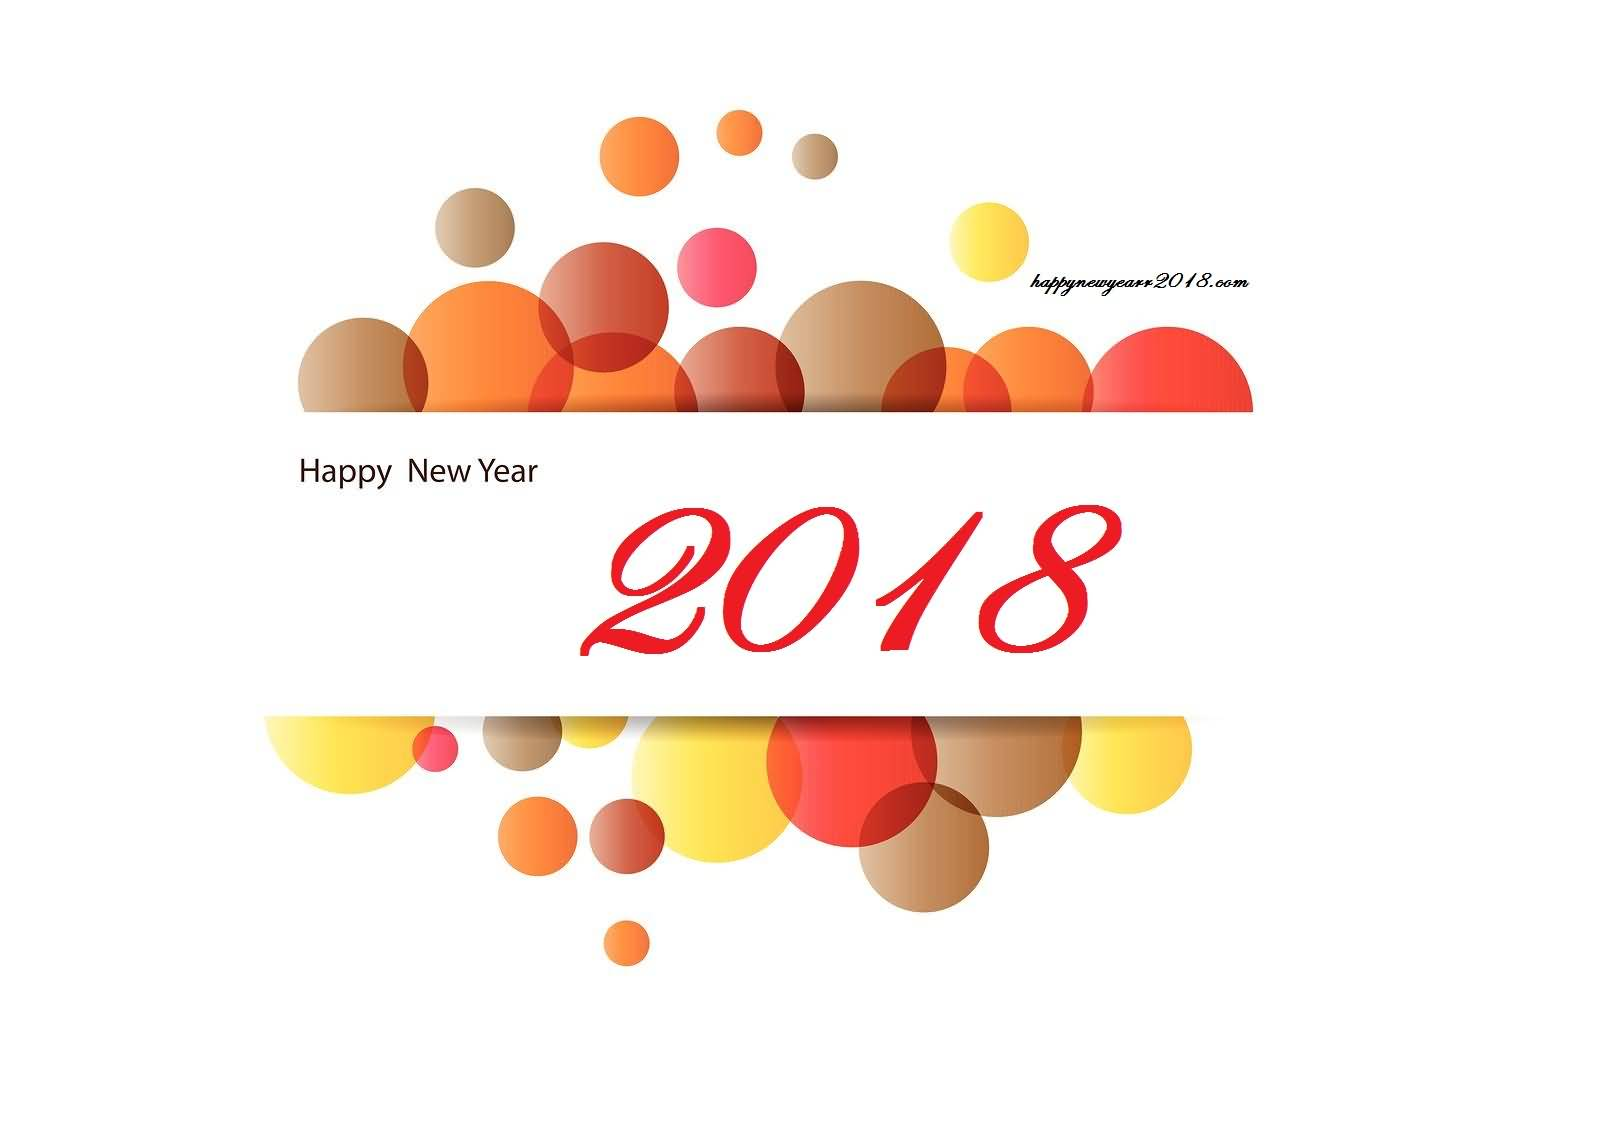 New Year 2018 Cards Wishes Image Picture Photo Wallpaper Greetings 11